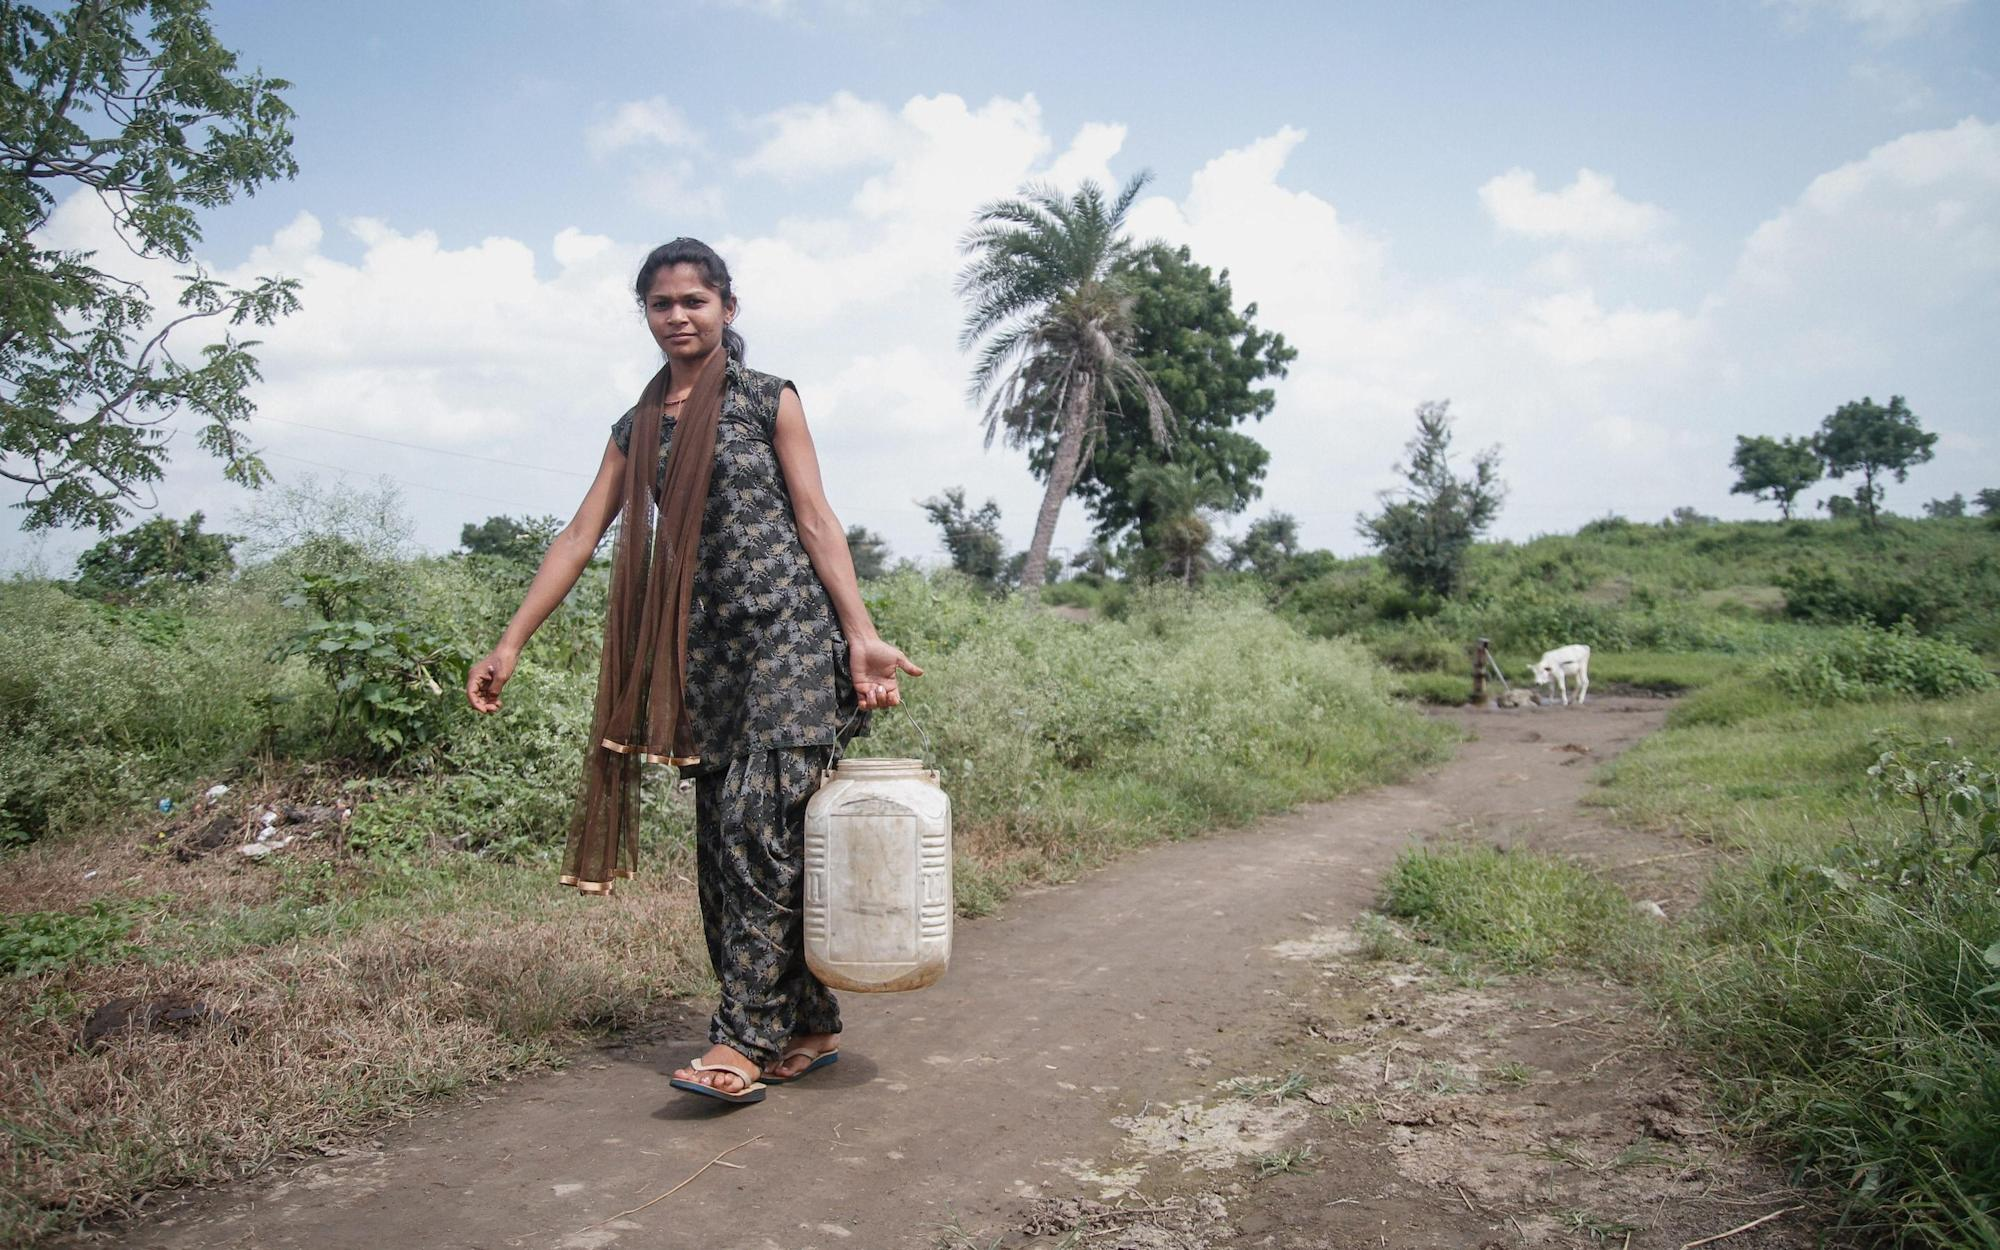 Collecting drinking water can cause serious injury and disproportionately affects women, study finds